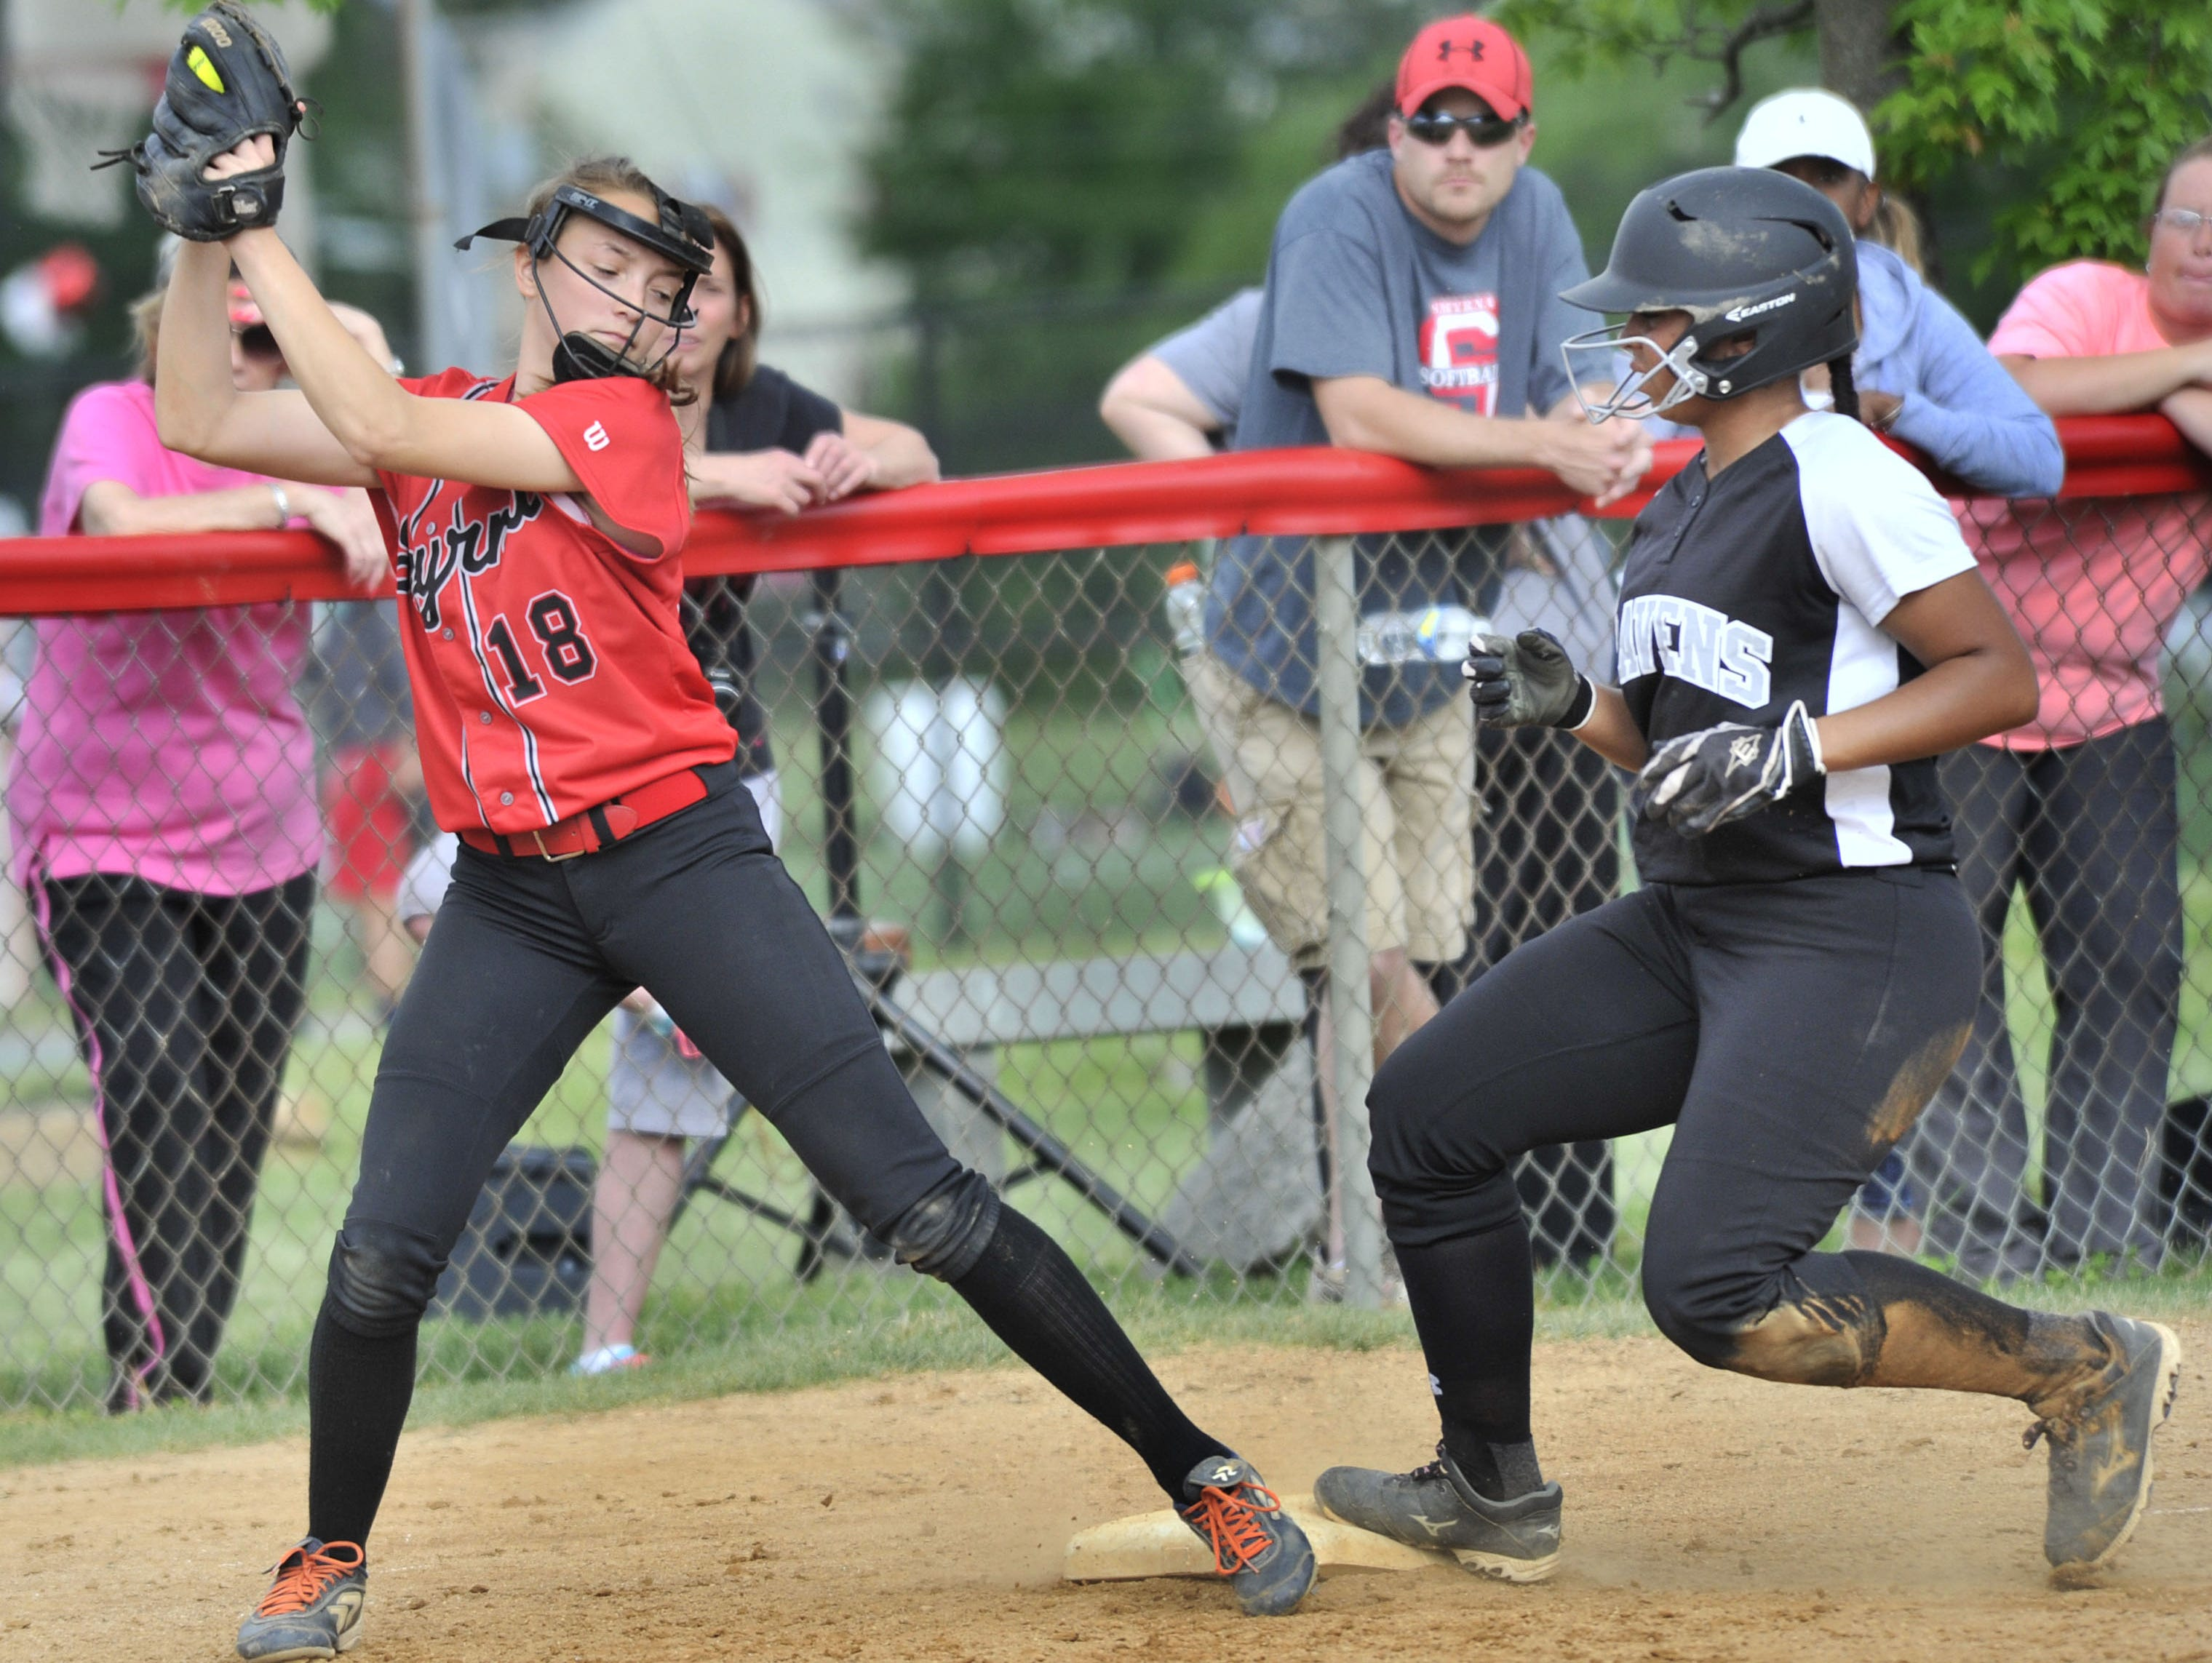 Sussex Tech's Madison Watson advanced to third when a pitch got away from the Eagles' catcher early in the game Thursday. Sarah Miller of the Eagles takes in a late throw.